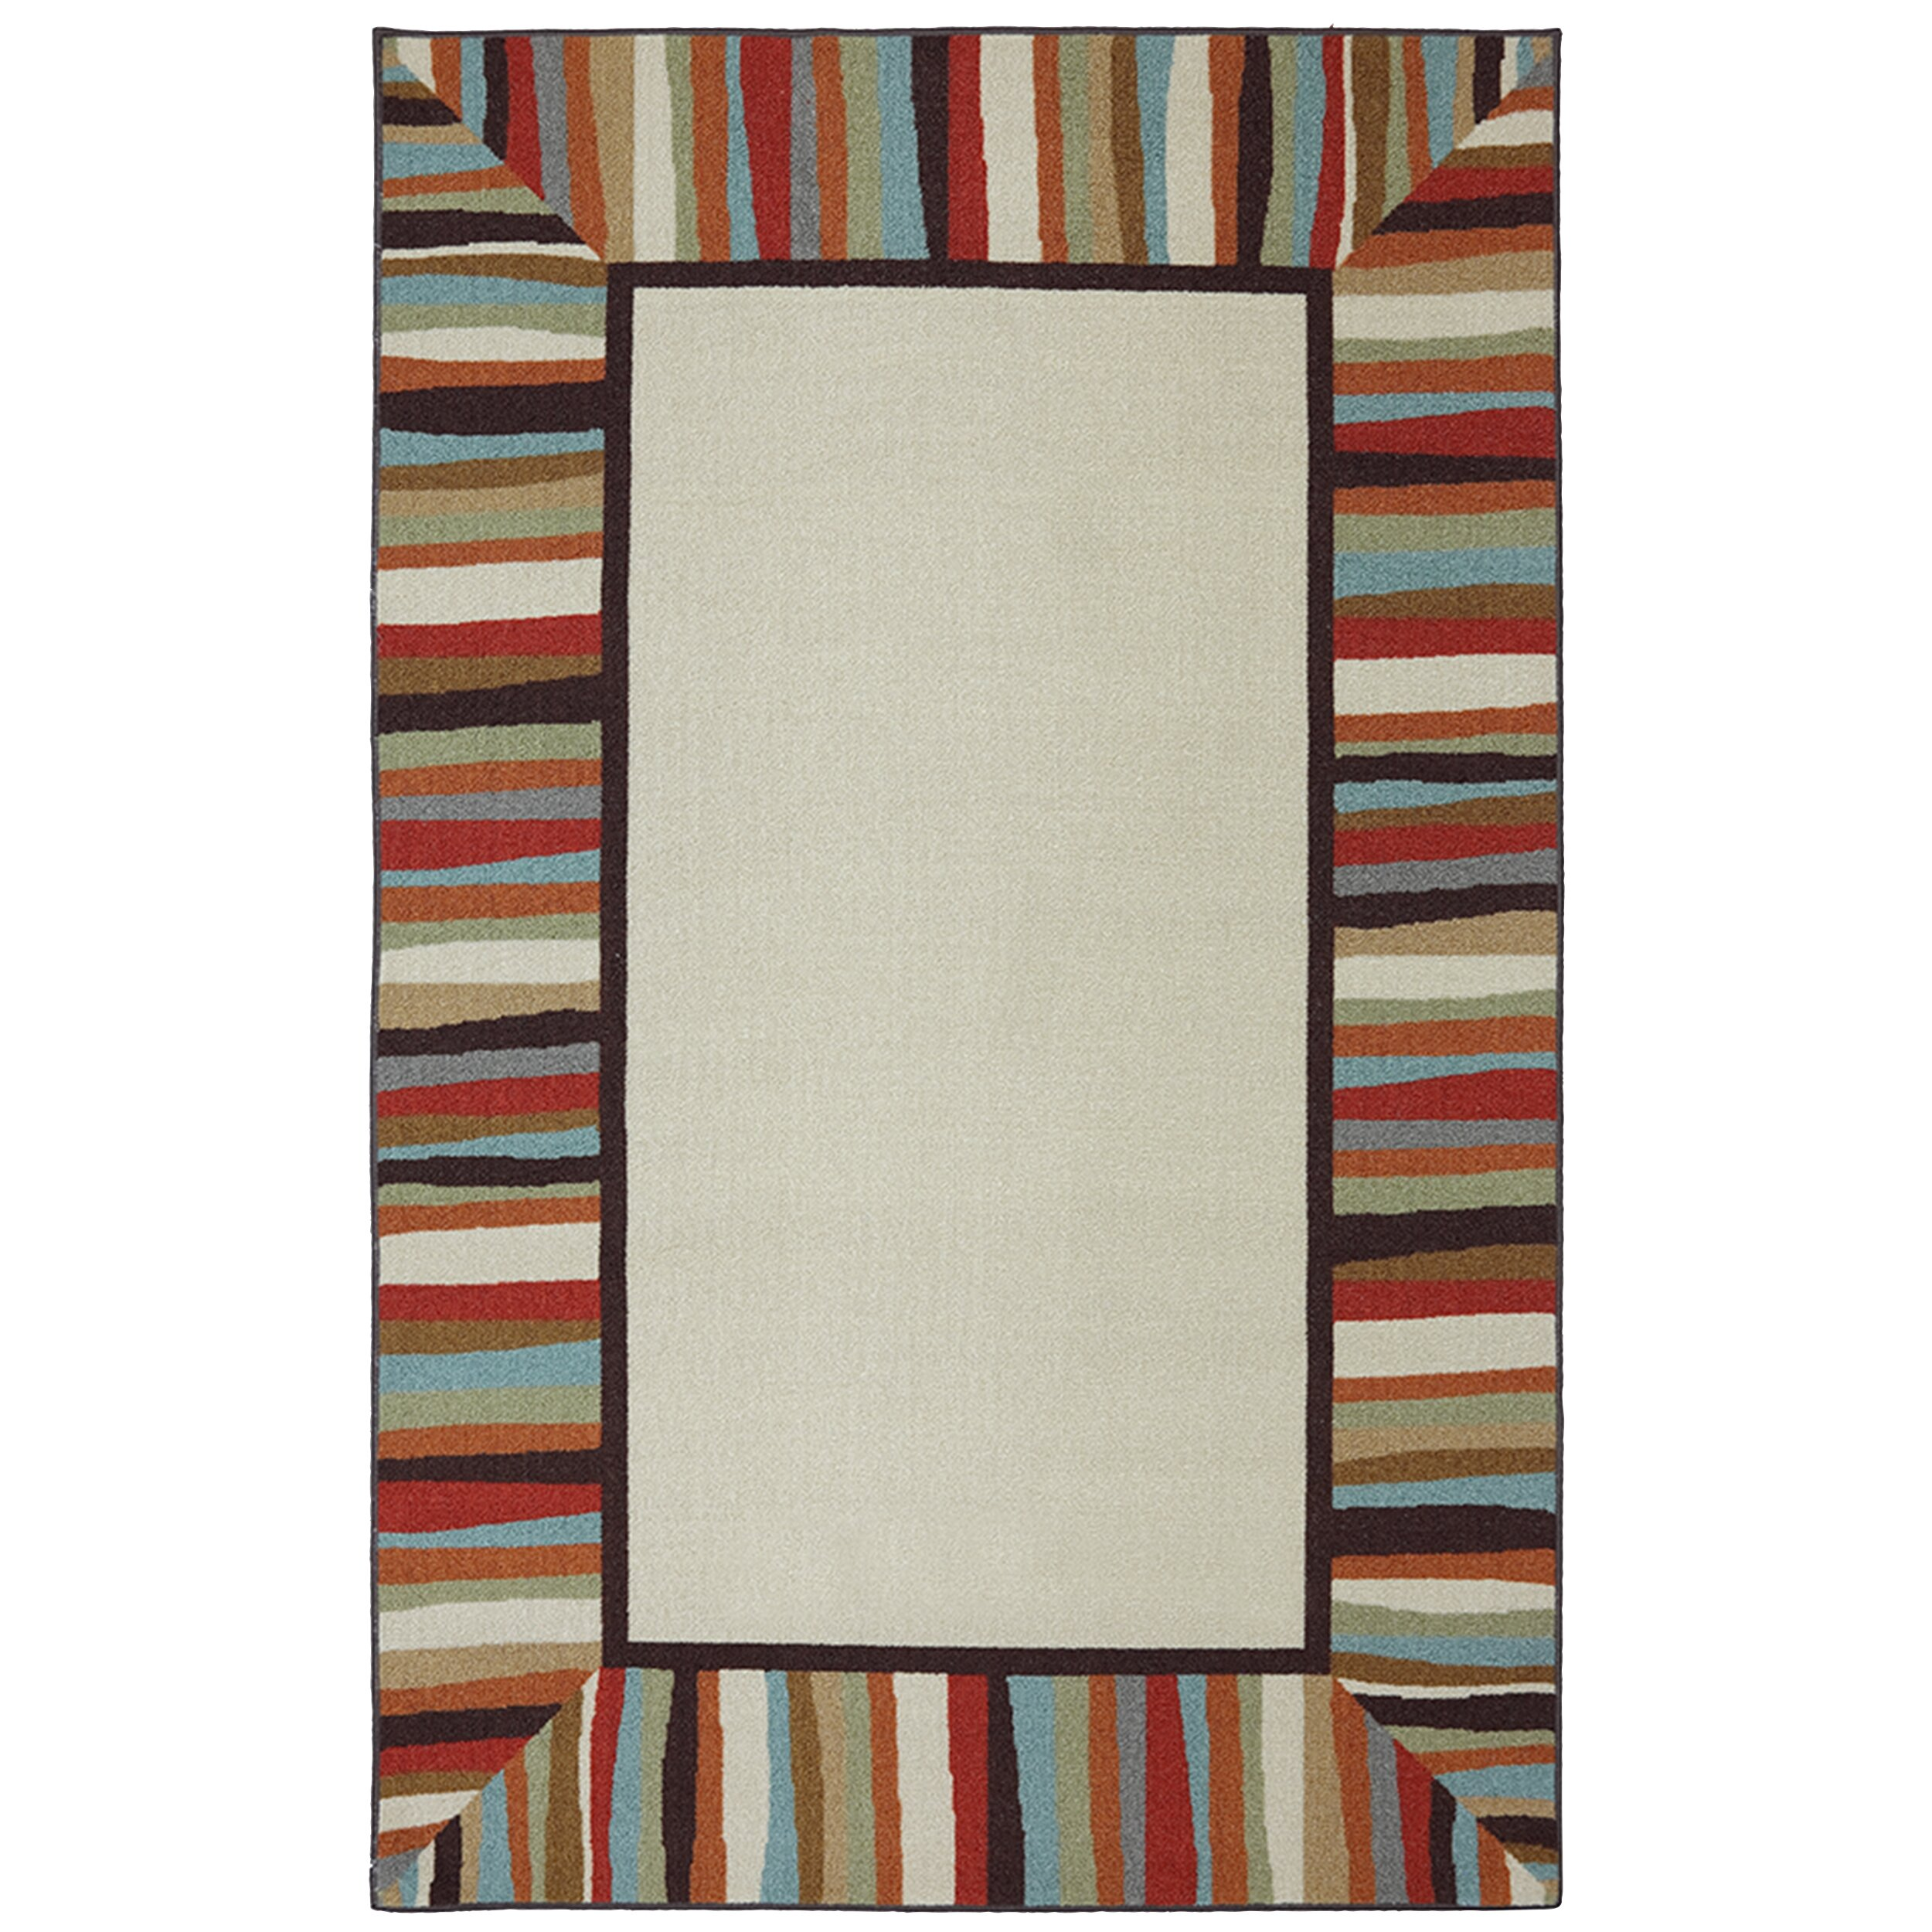 Mohawk Home Patio Border Rainbow Outdoor Area Rug